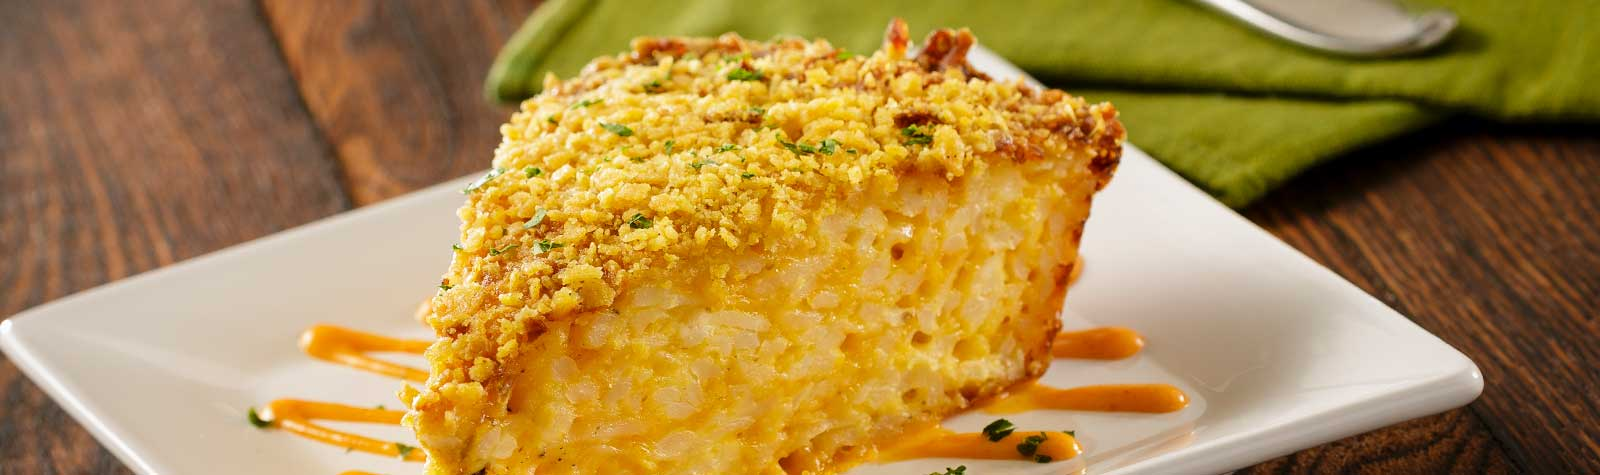 Shredded Potato & Cheddar Casserole